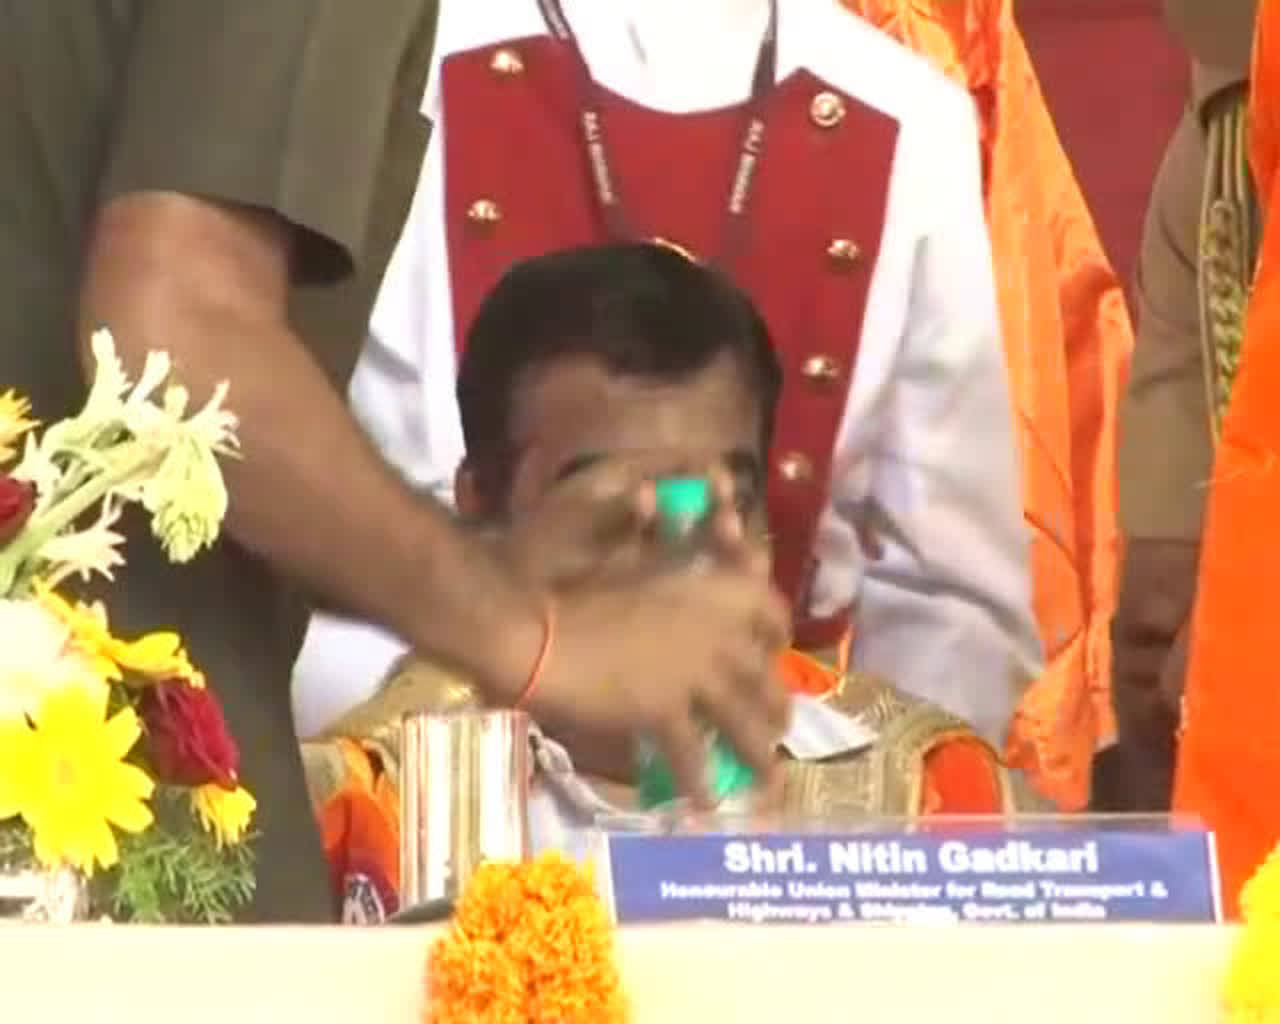 Ahmednagar: Union Minister of Road Transport and Highways Nitin Gadkari falls unconscious during the national anthem in Rahuri